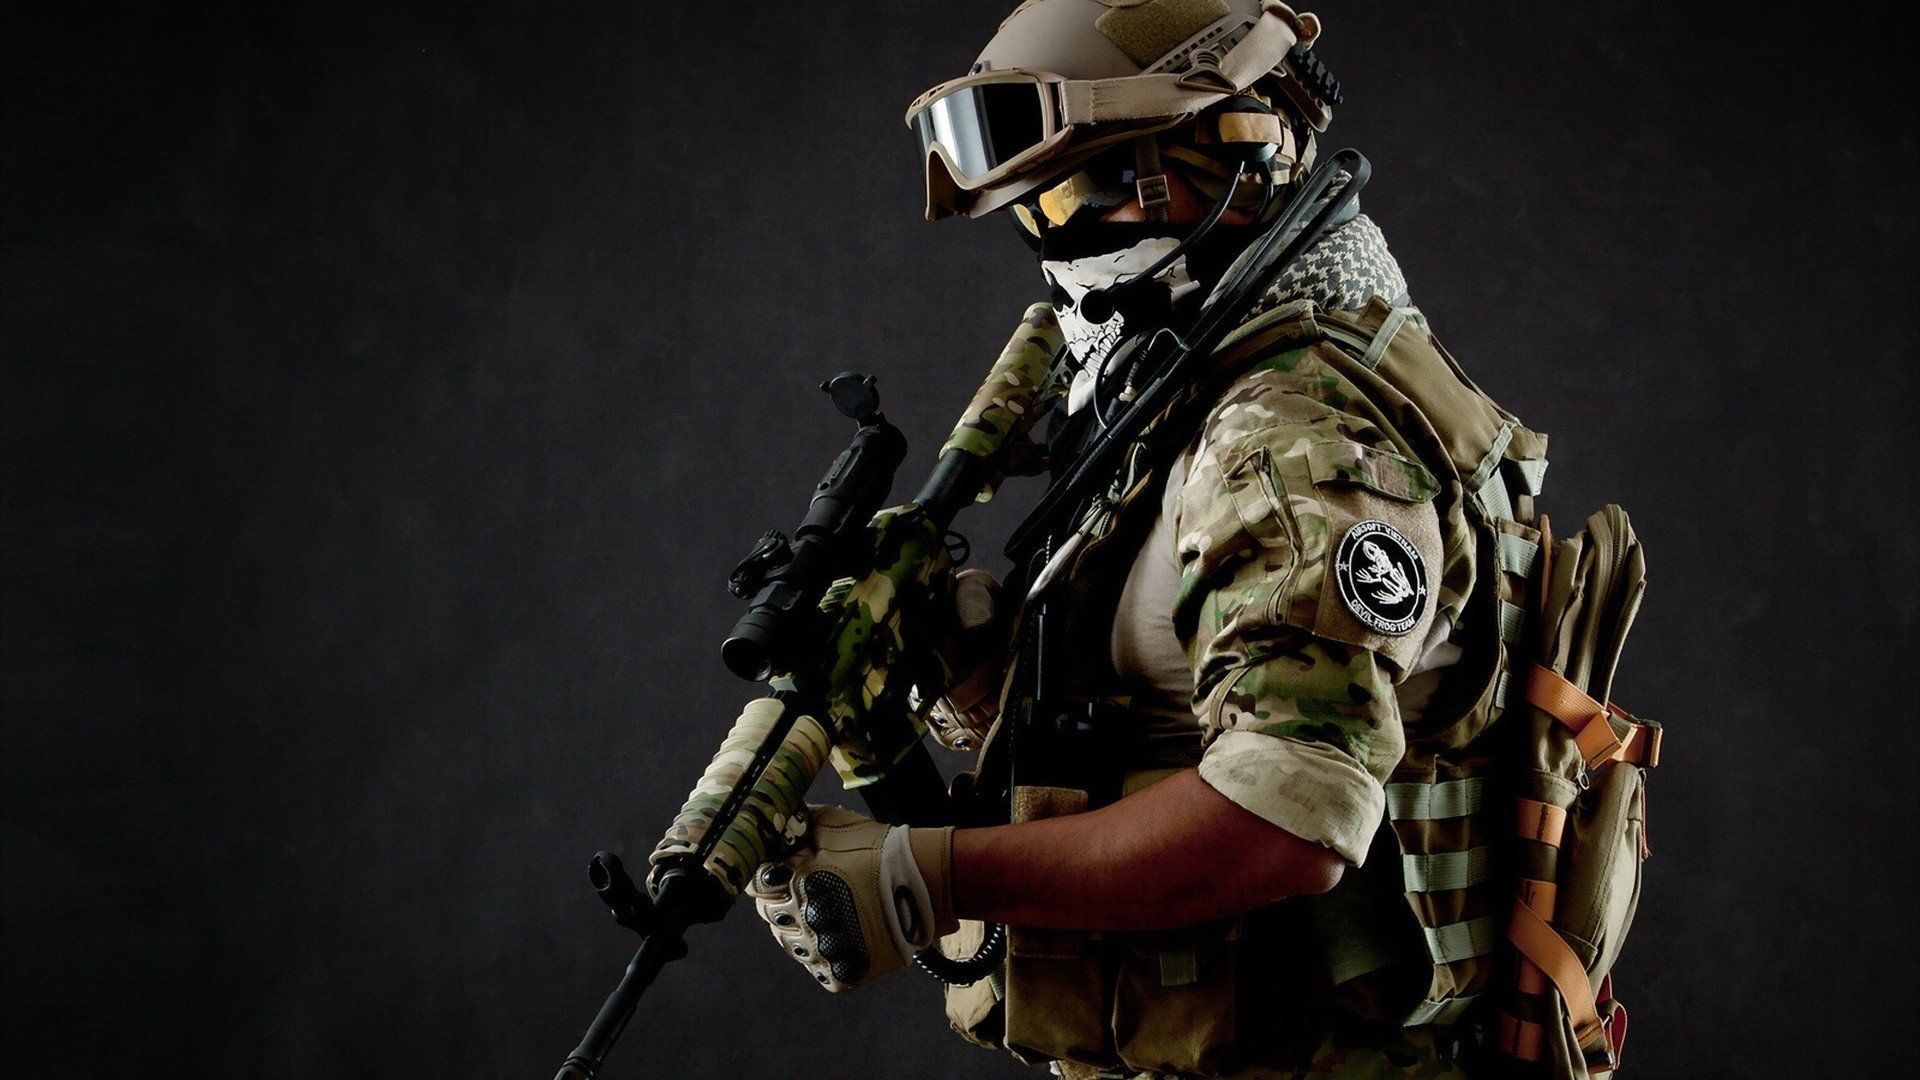 Military Soldier Wallpaper Military Wallpaper Army Wallpaper Army Soldier